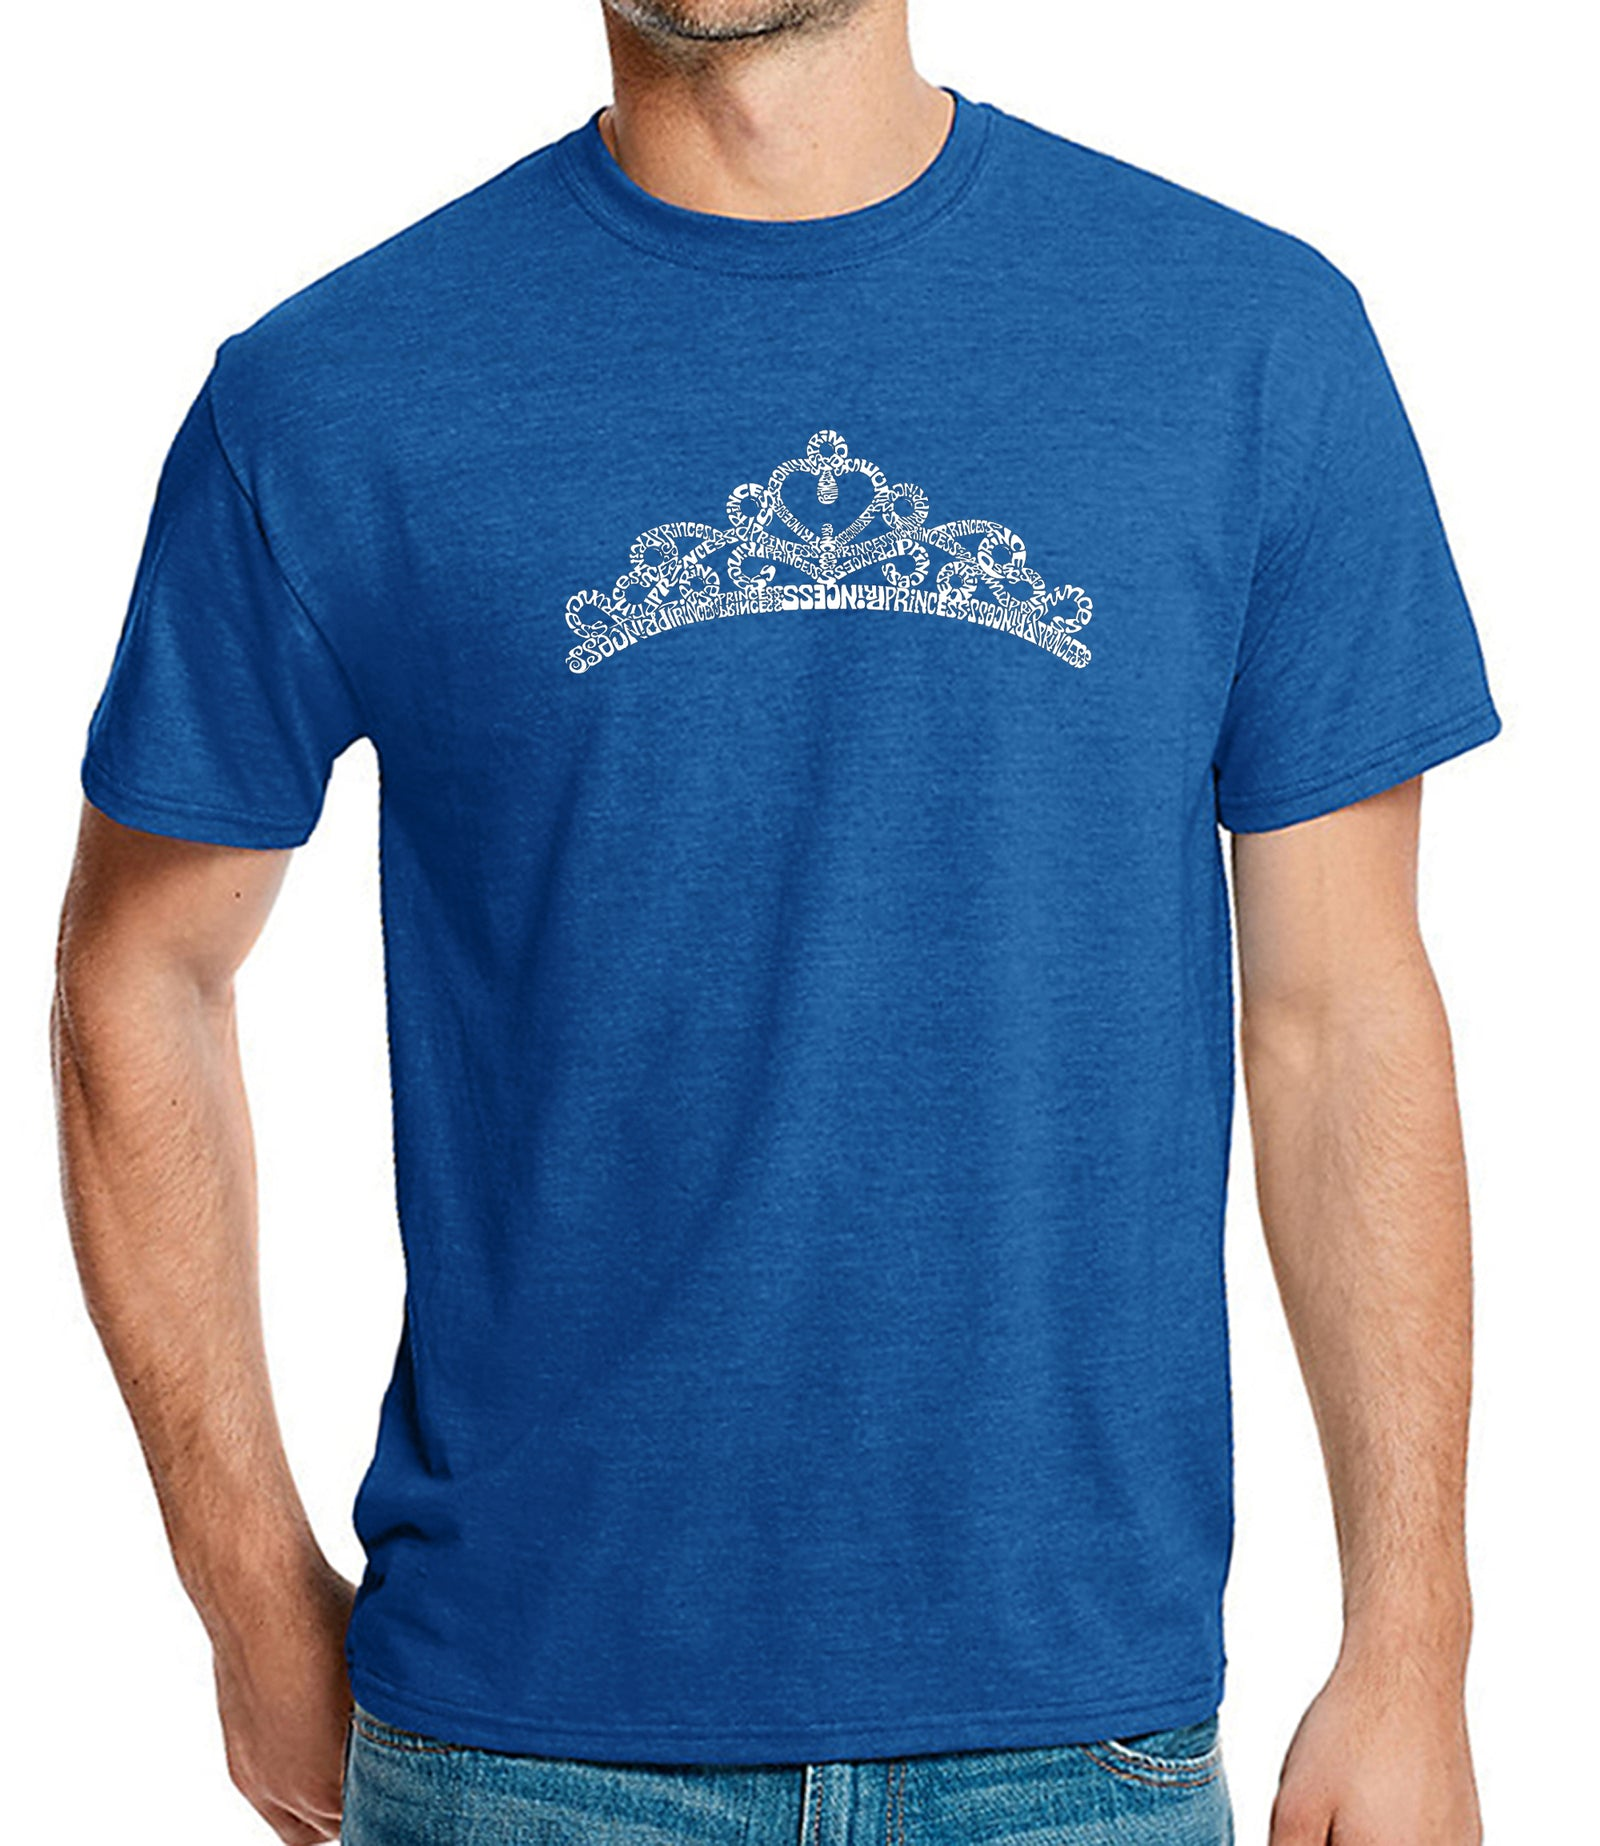 Men's Premium Blend Word Art T-shirt - Princess Tiara